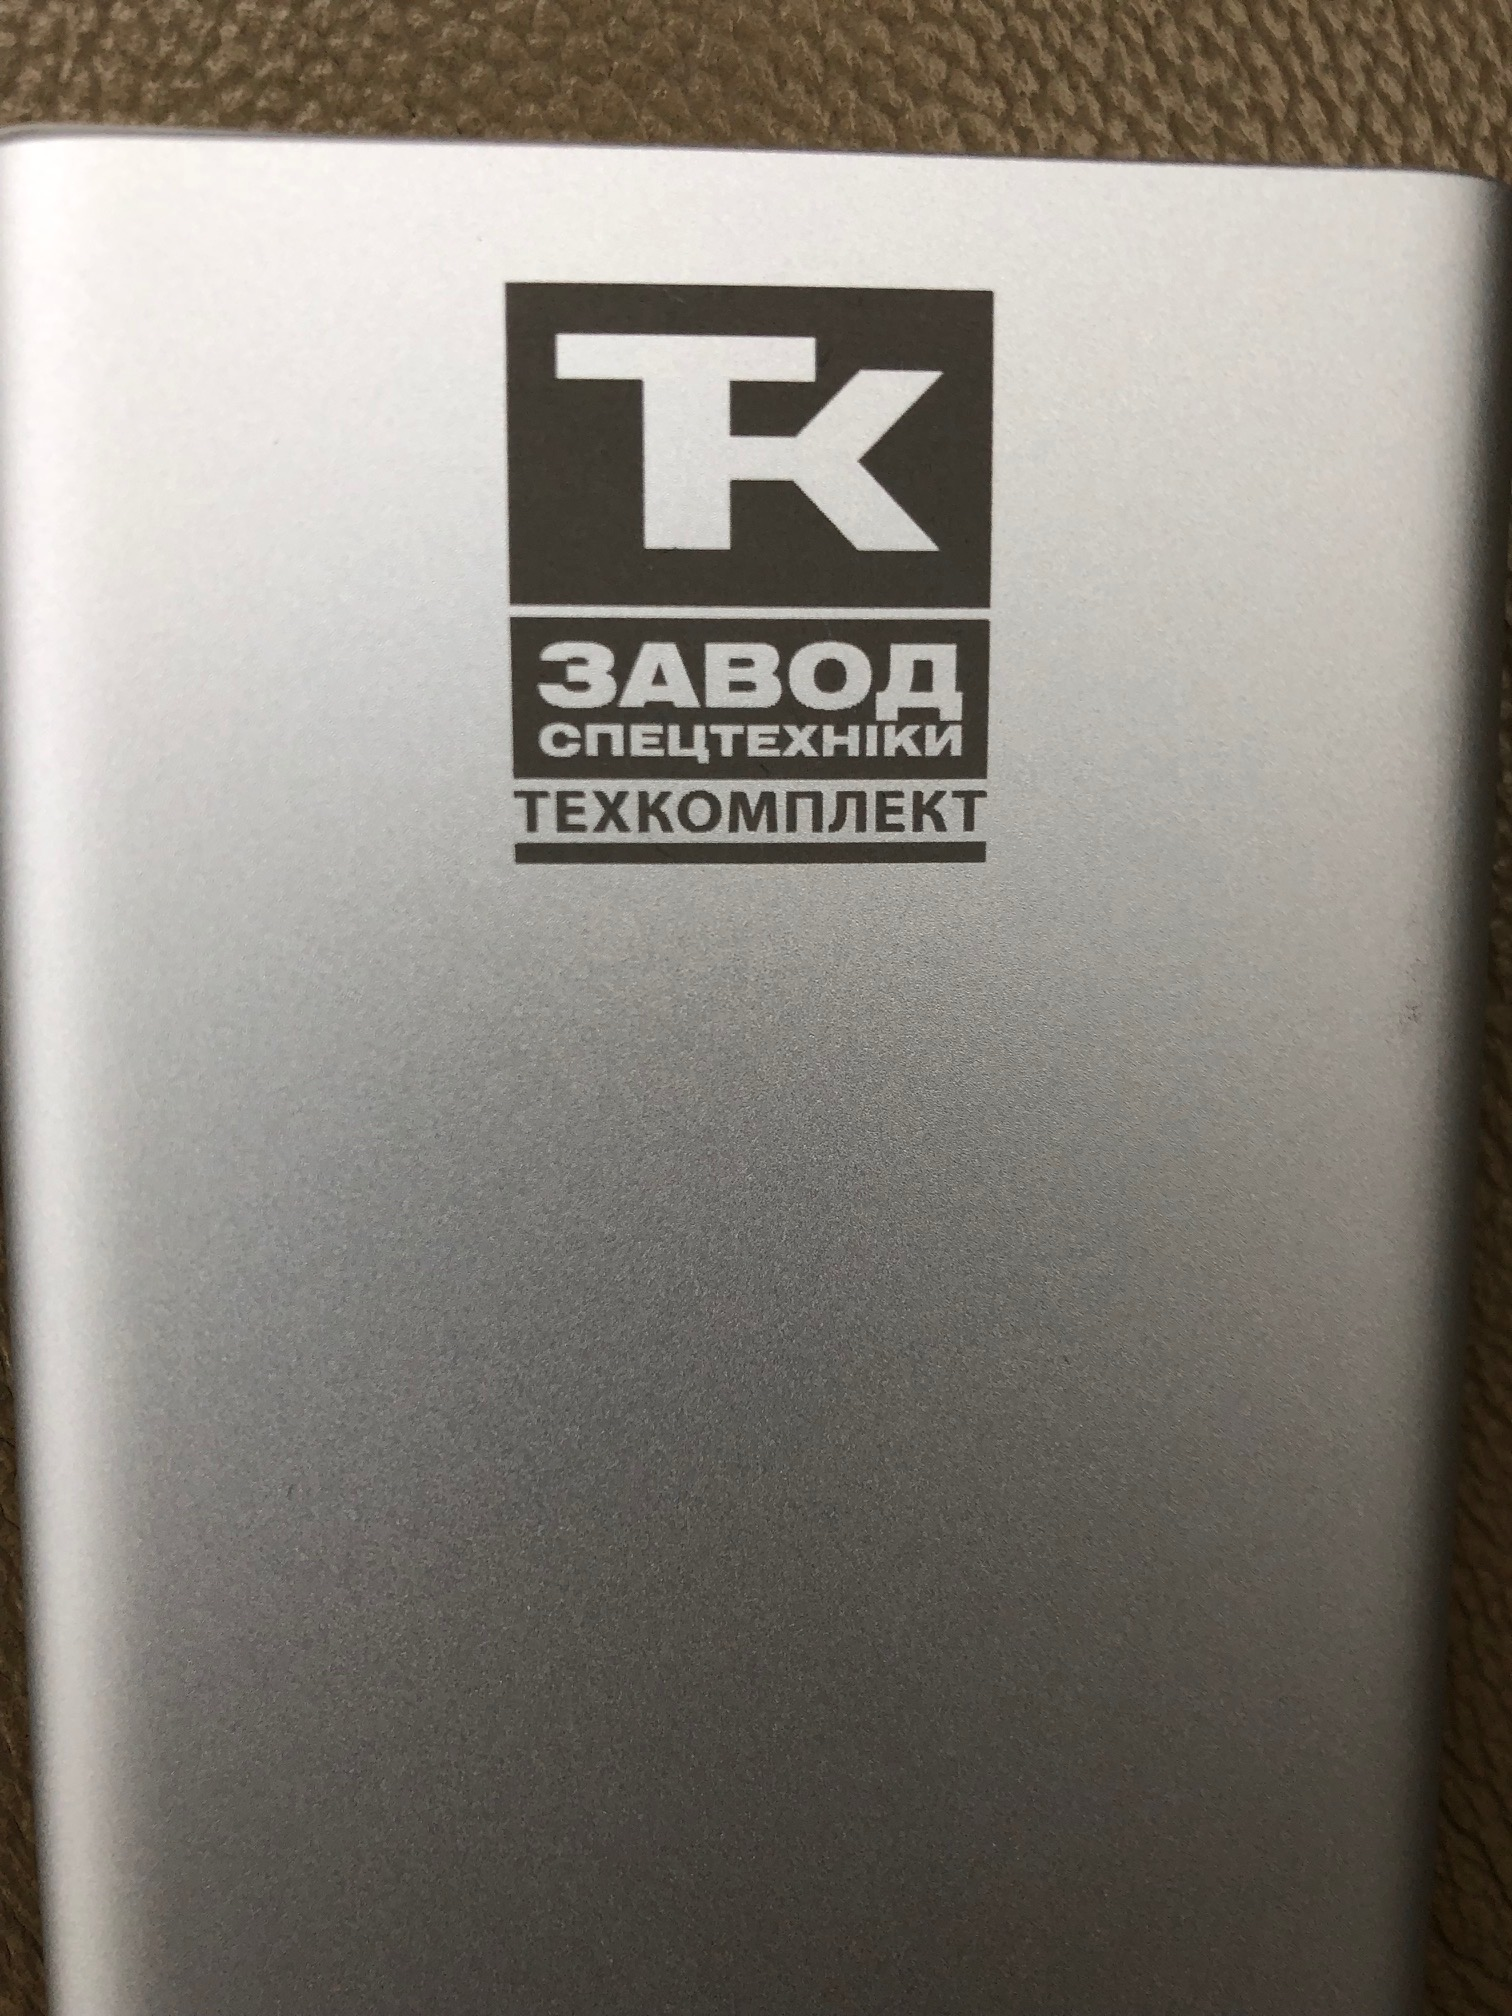 Power banks with LOGO